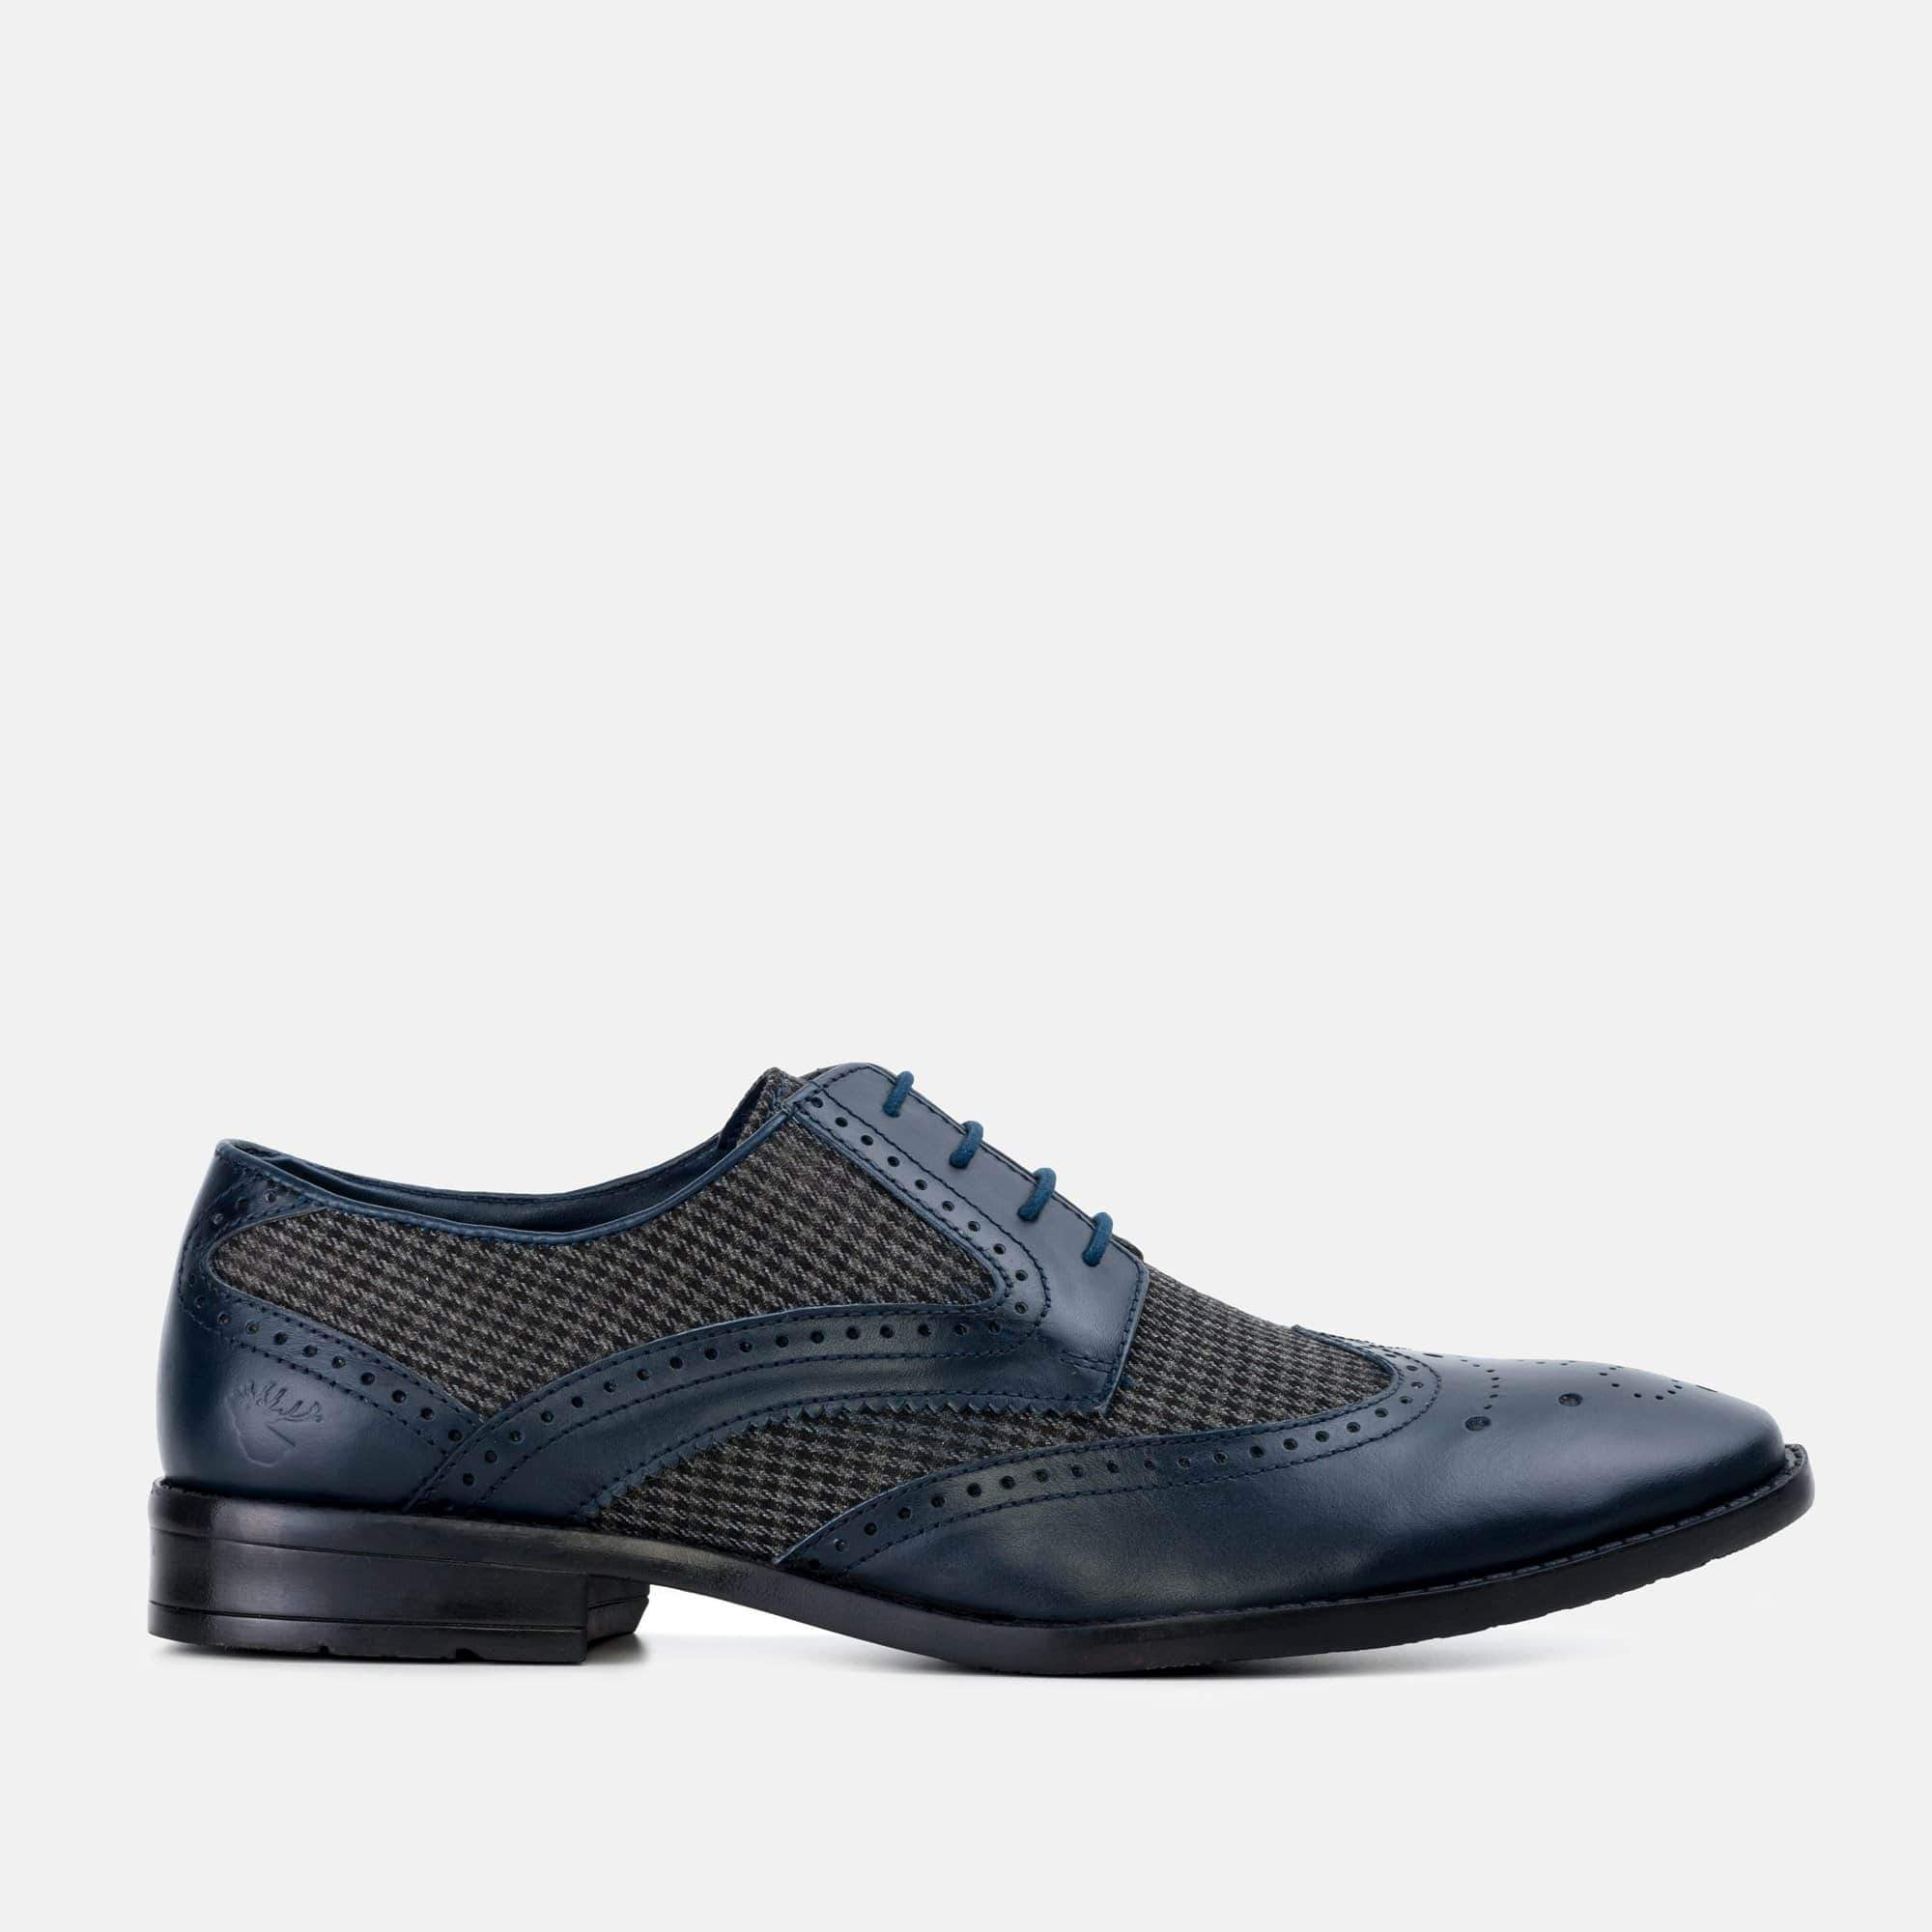 Goodwin Smith Footwear AW19 MENS GOODWIN SMITH NEWCHURCH NAVY HOUNDTOOTH DERBY